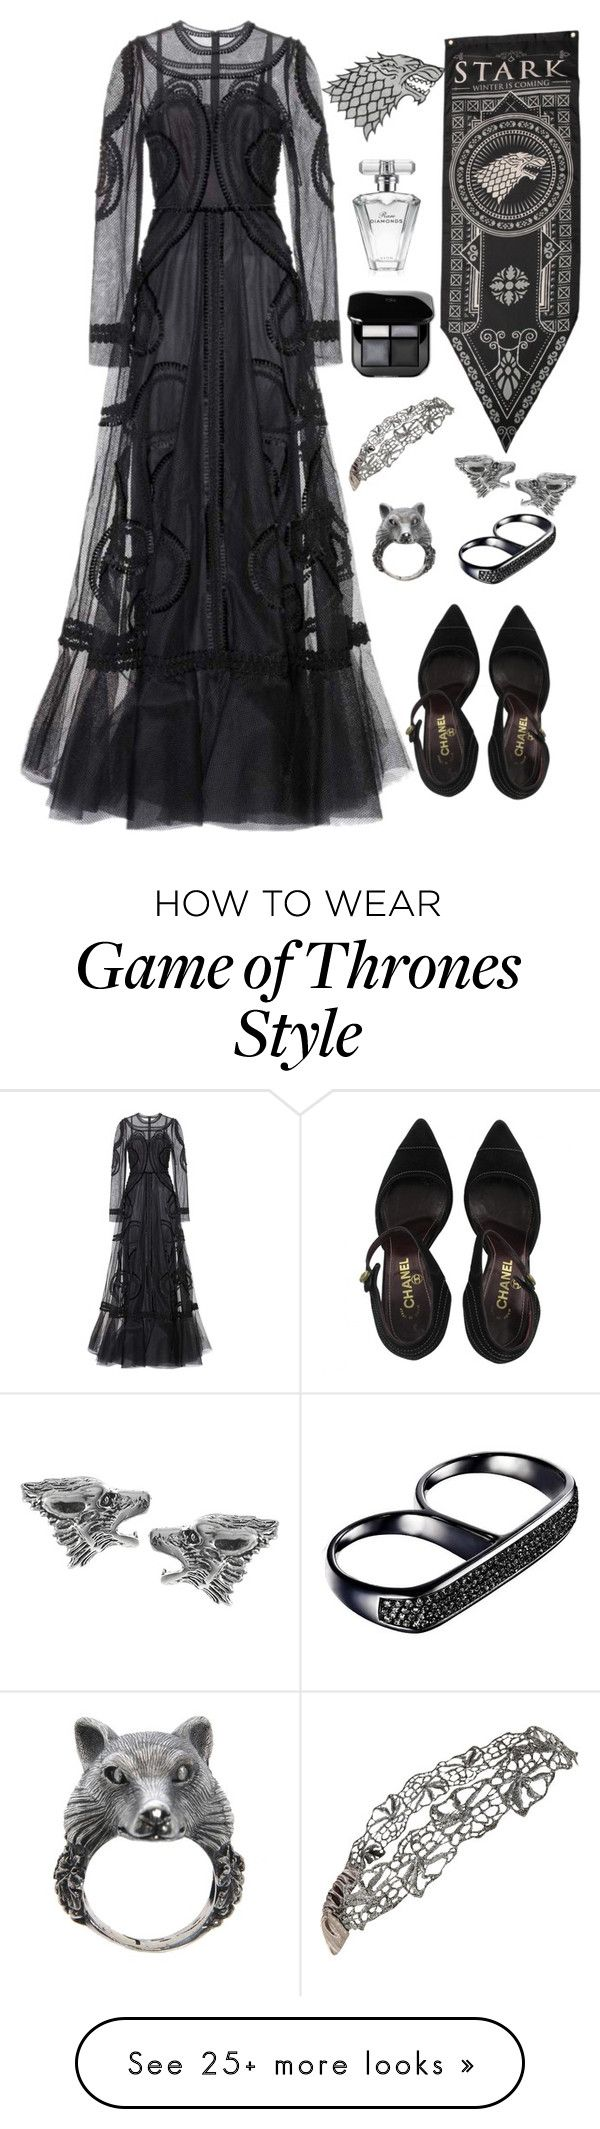 """""""Winter is Coming // House Stark"""" by mrs-malfoy on Polyvore featuring Dolce&Gabbana, Ugo Cacciatori, Chanel, Journee Collection, AS29, Avon, dolceandgabbana, GameOfThrones and HouseStark"""